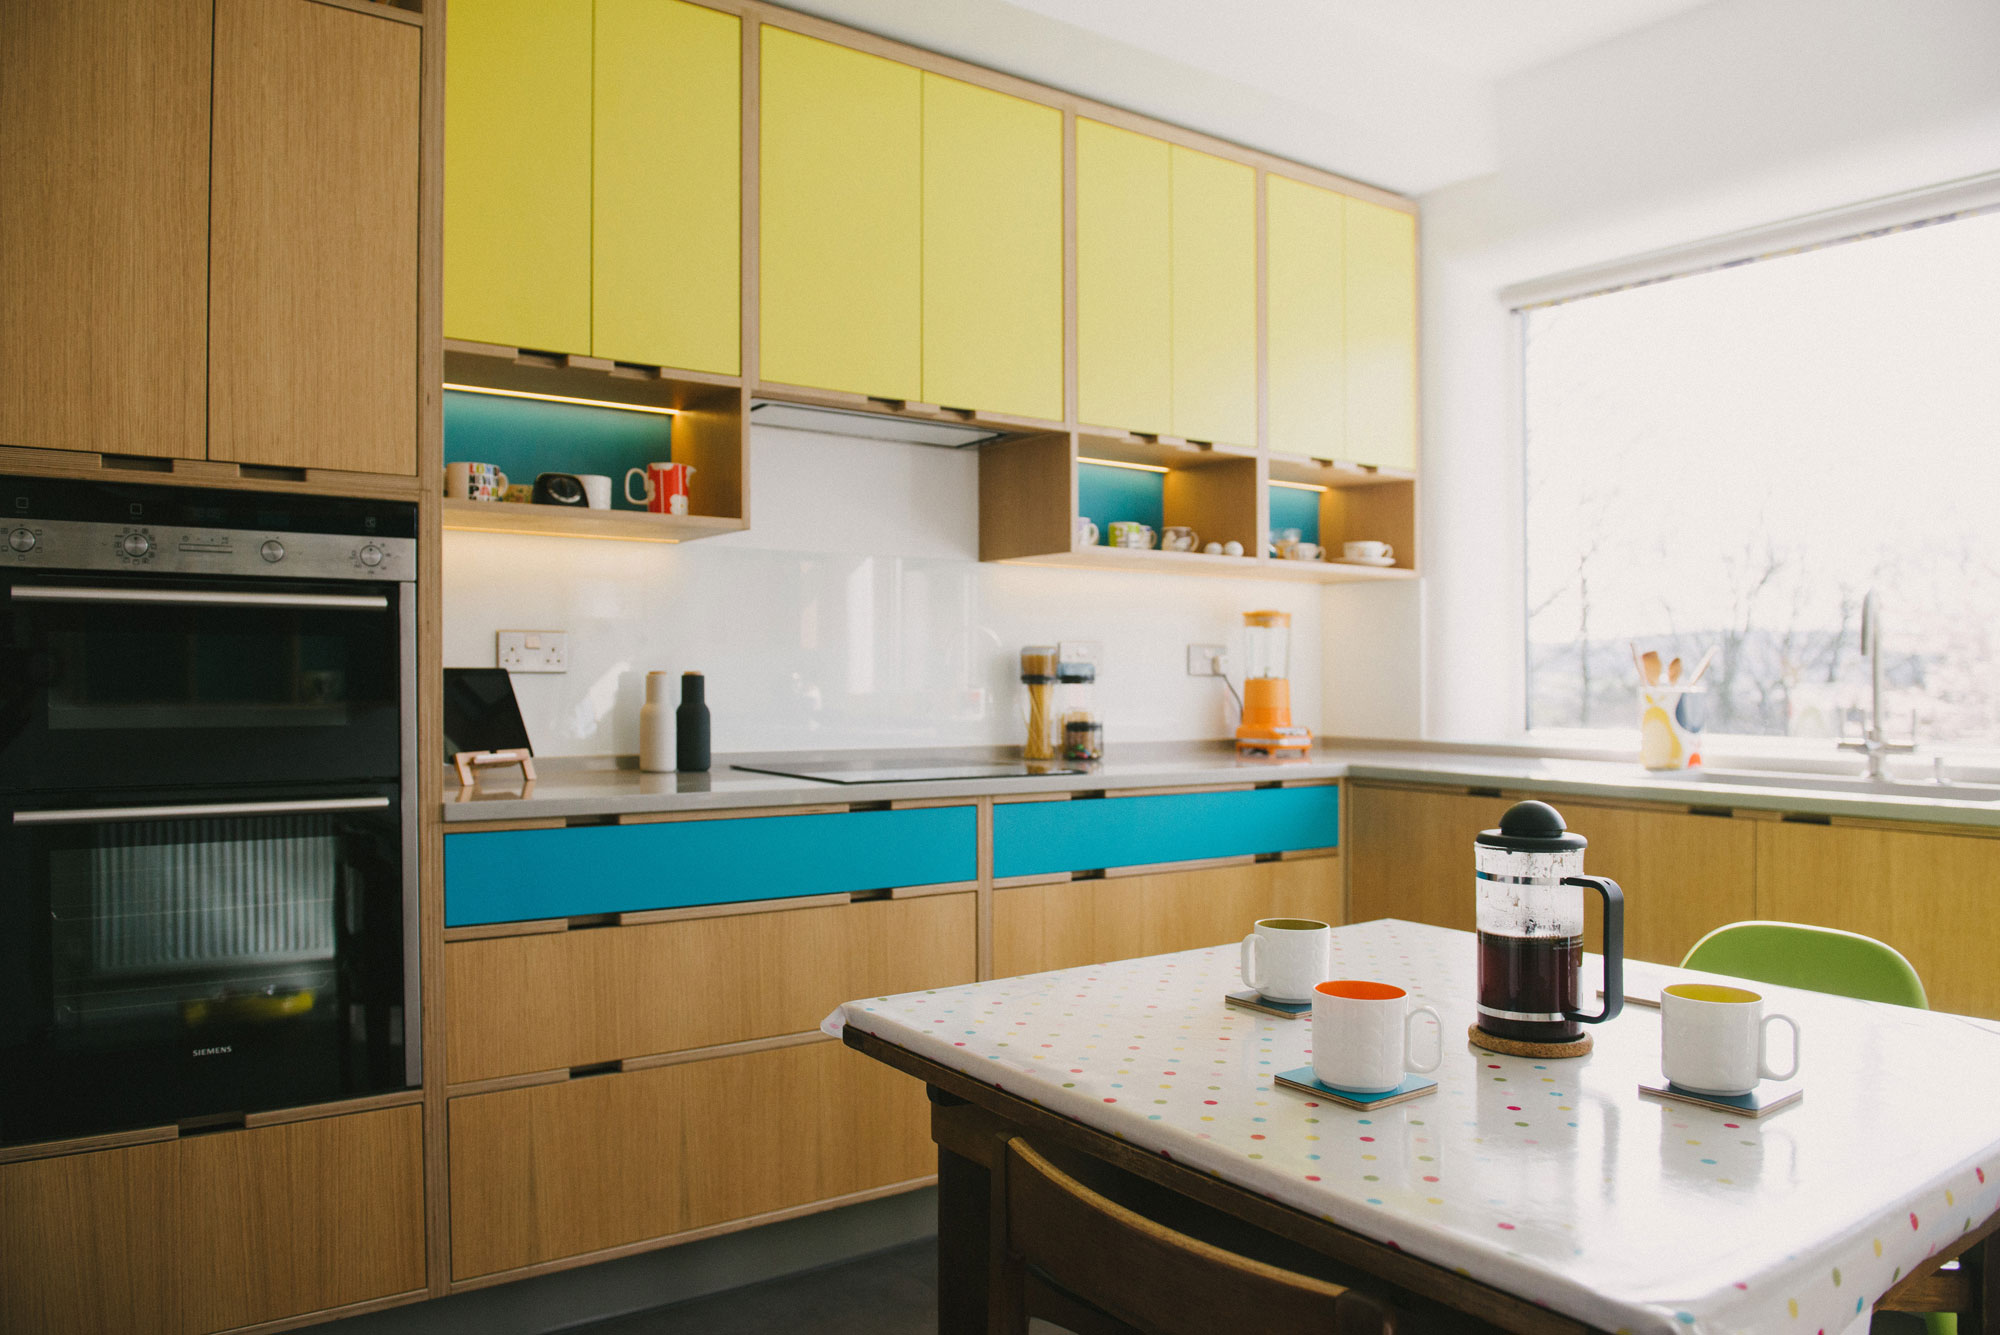 Retro yellow and blue plywood kitchen